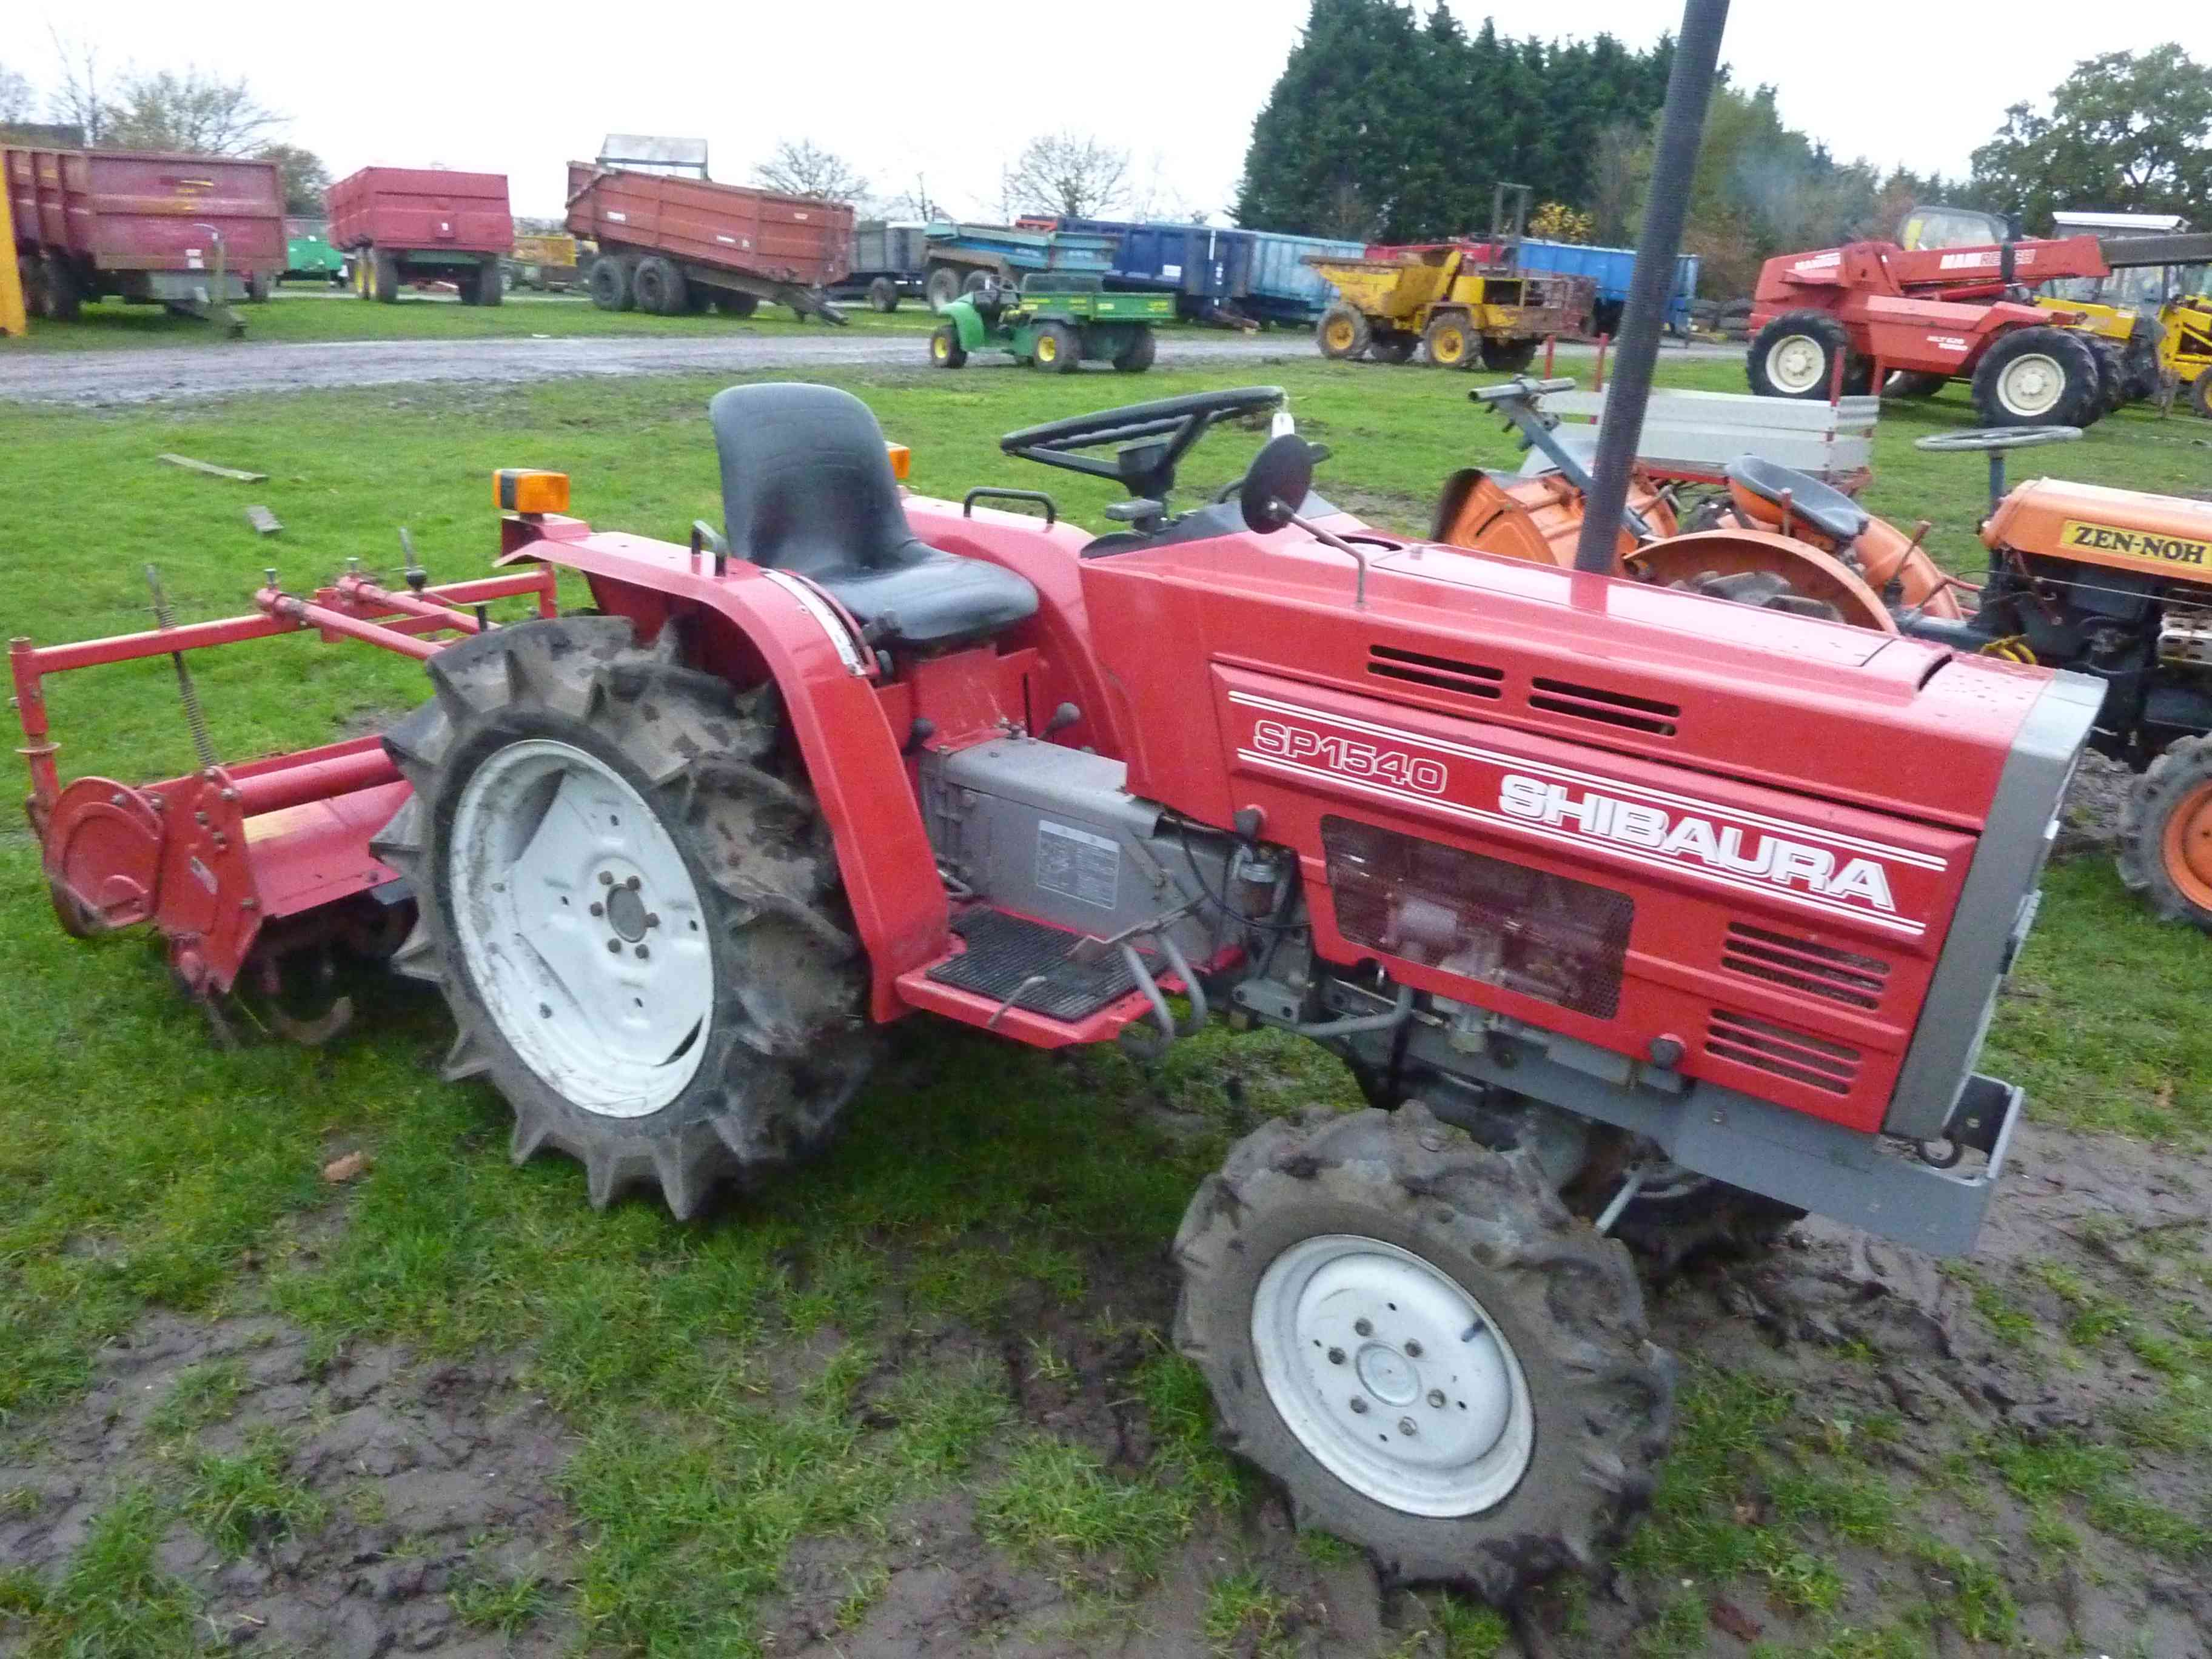 Lot 4785 - 4785 Shibaura SP1540 4wd compact tractor with rotavator, gwo